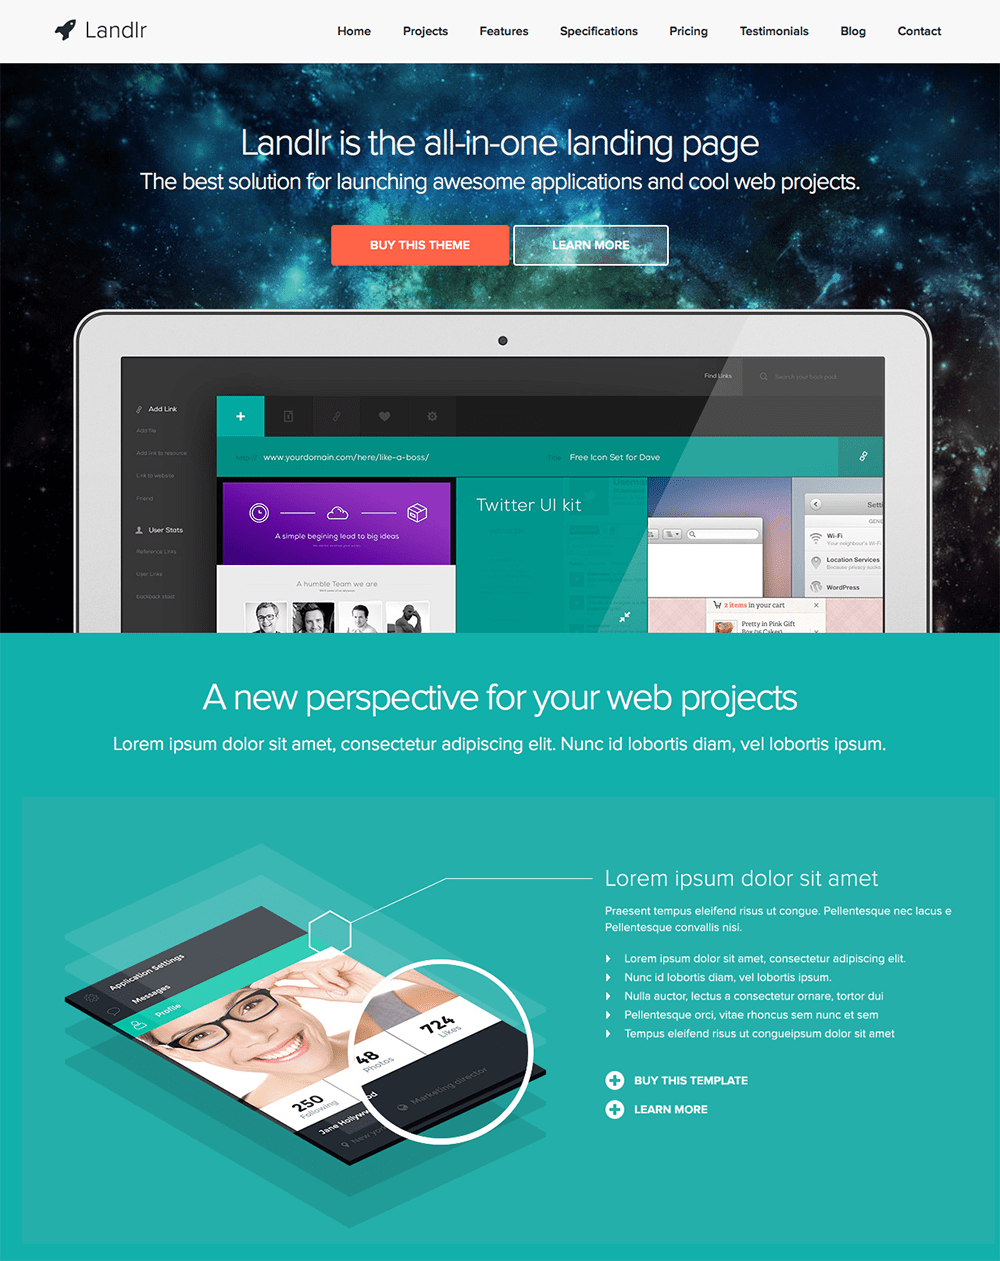 Landlr – The All-in-One Landing Page